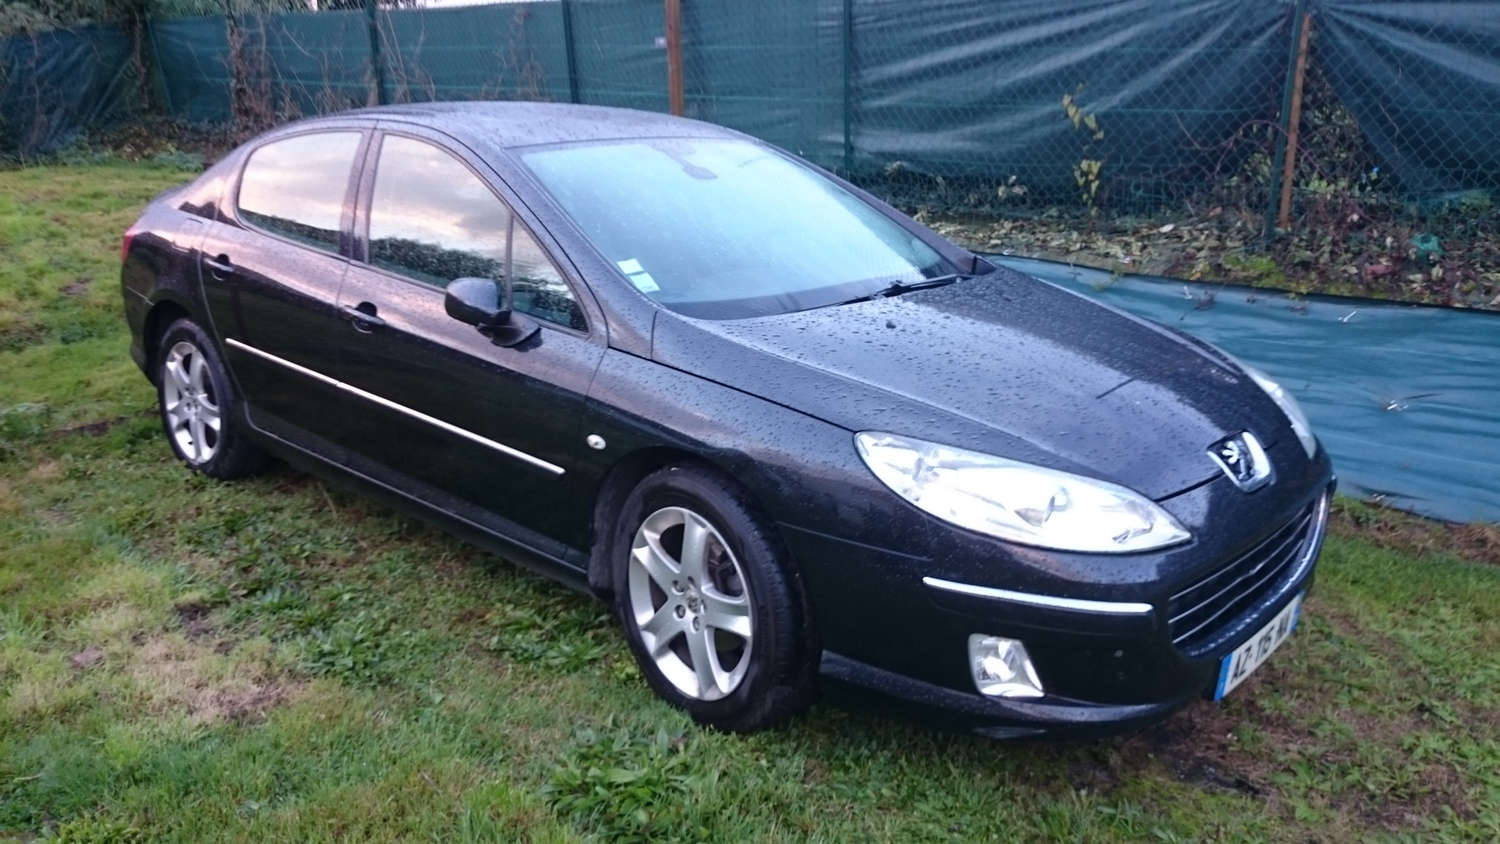 peugeot 407 navteq 230410 km 2007 2 0 hdi 136cv voiture magic affaires 22. Black Bedroom Furniture Sets. Home Design Ideas